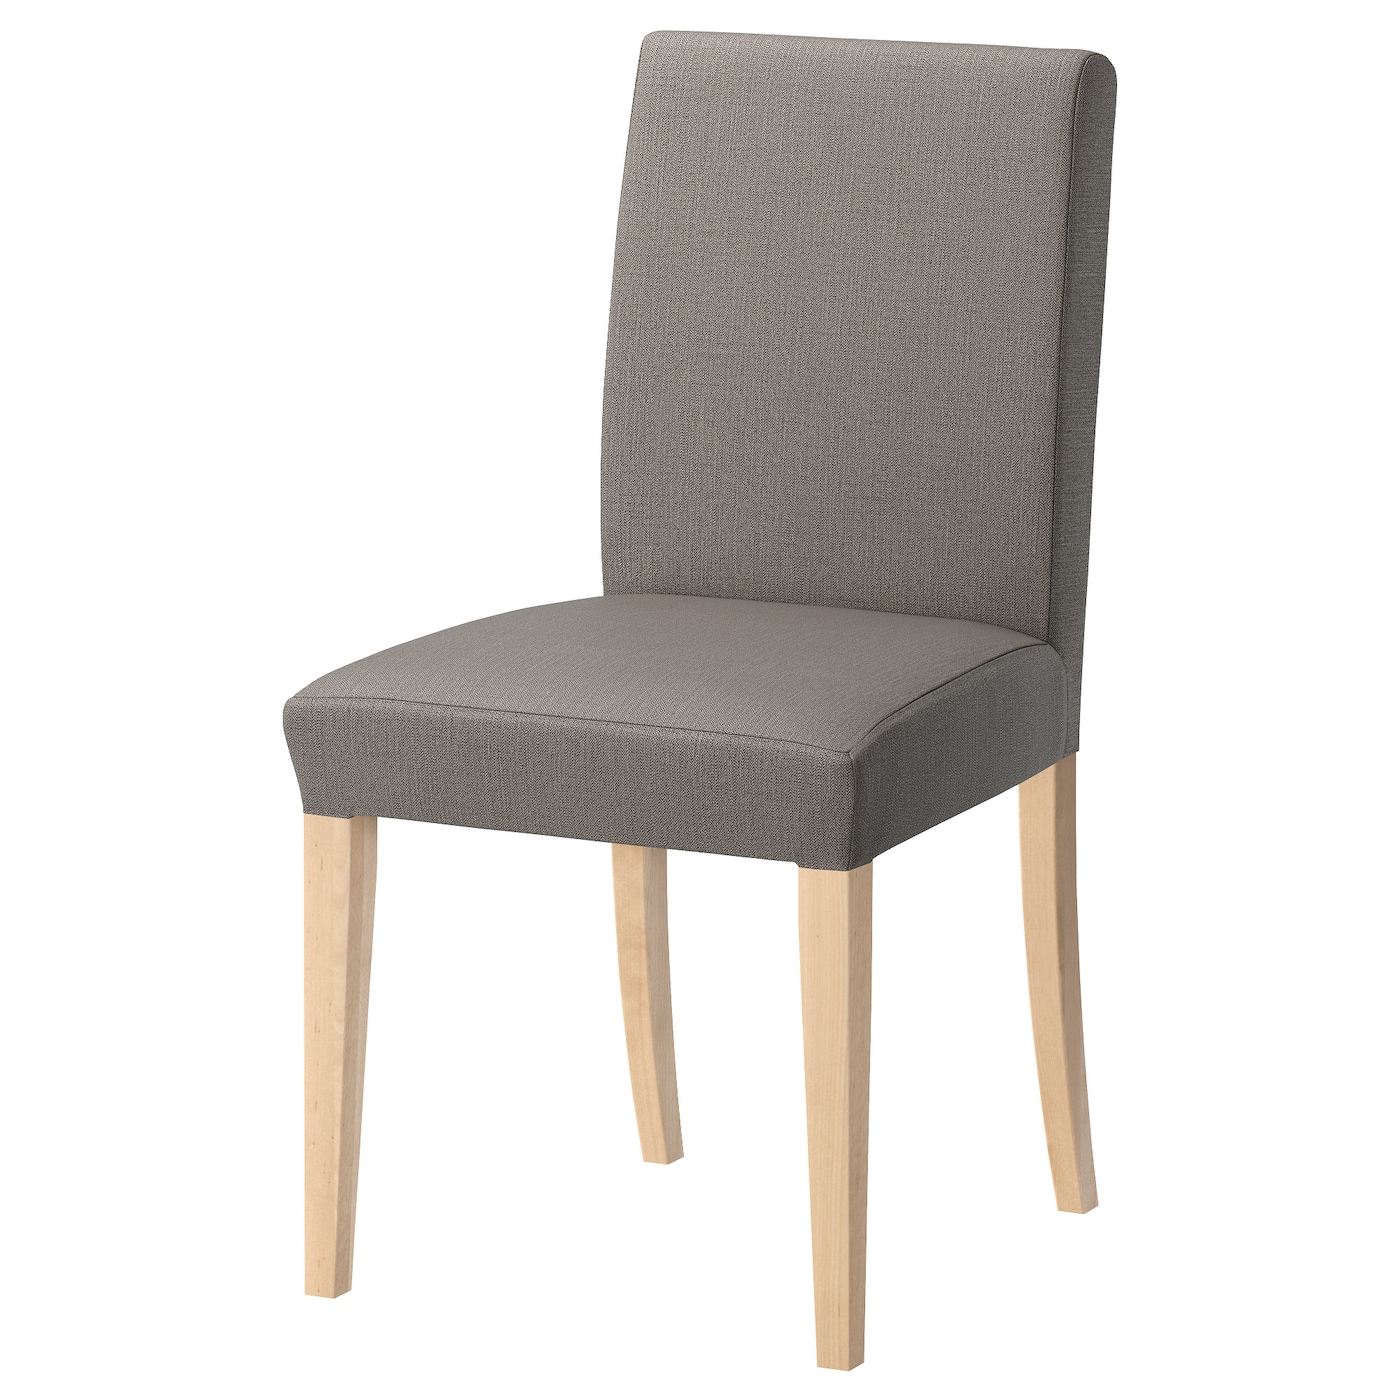 chairs upholstered foldable dining chairs ikea